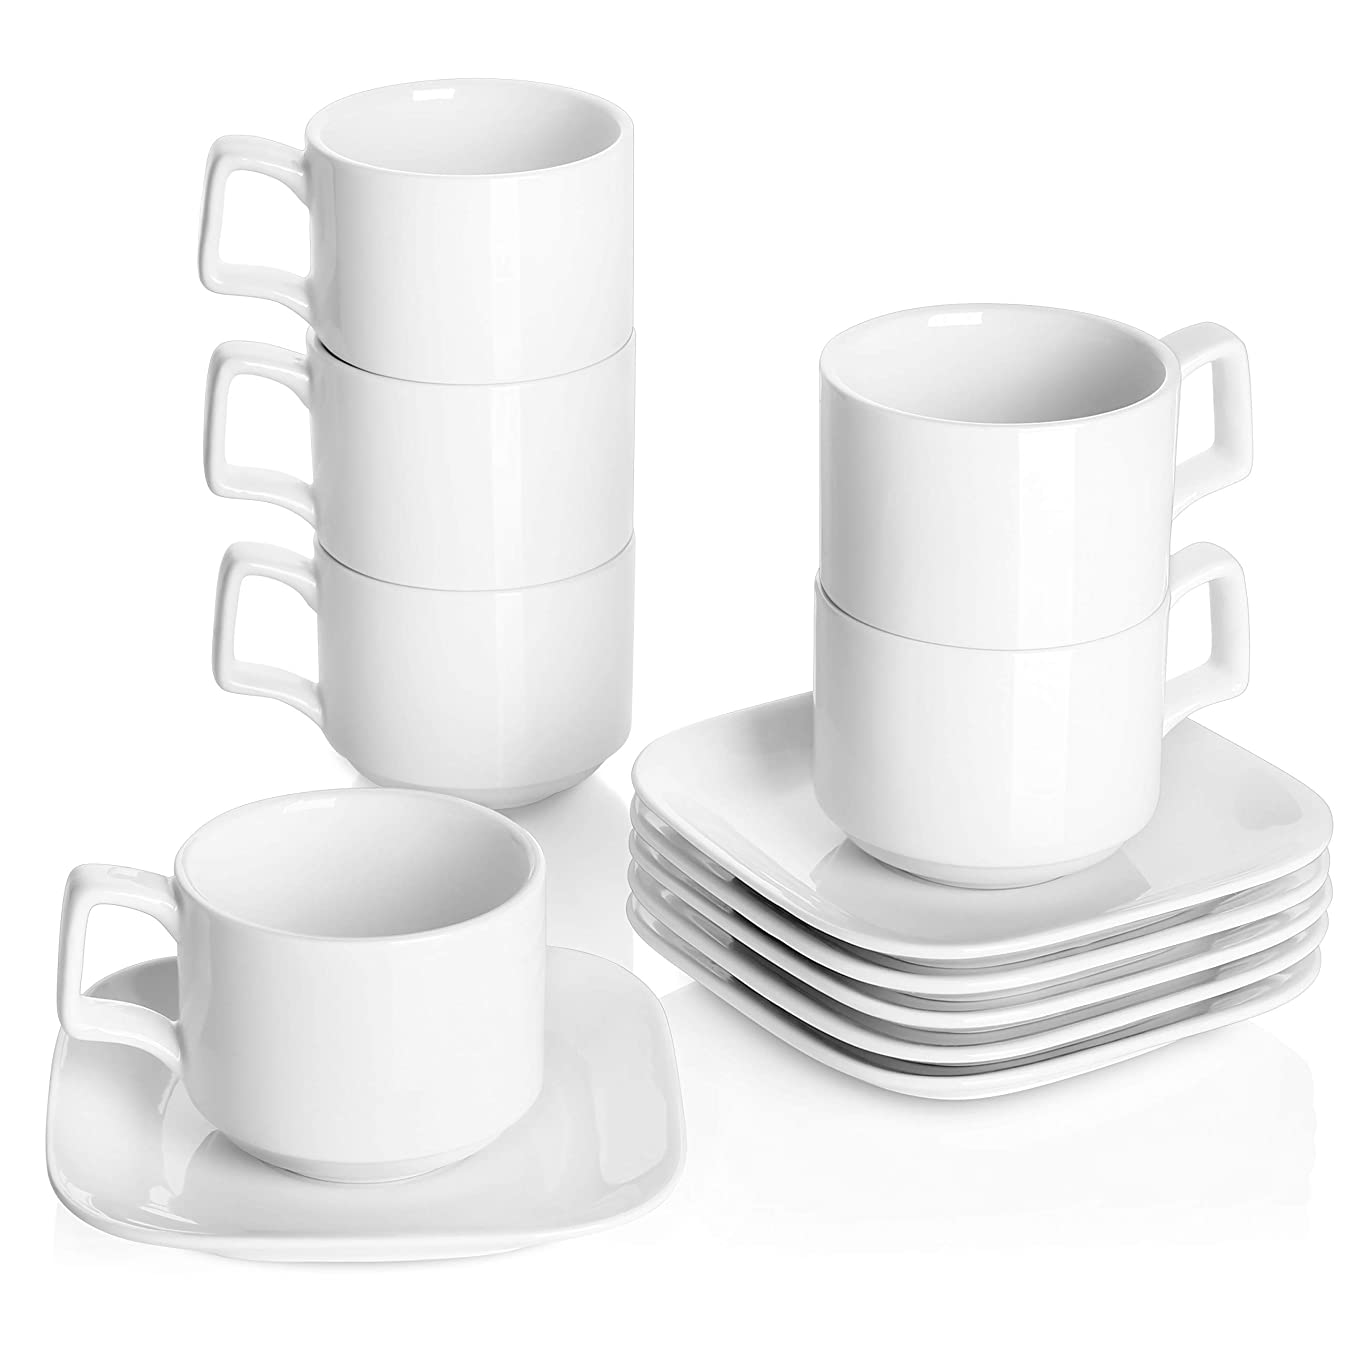 DOWAN Porcelain Coffee Cups with Square Saucers, 9 Ounce for Specialty Coffee Drinks, Cappuccino and Tea - Stackable Cups Set of 6, White